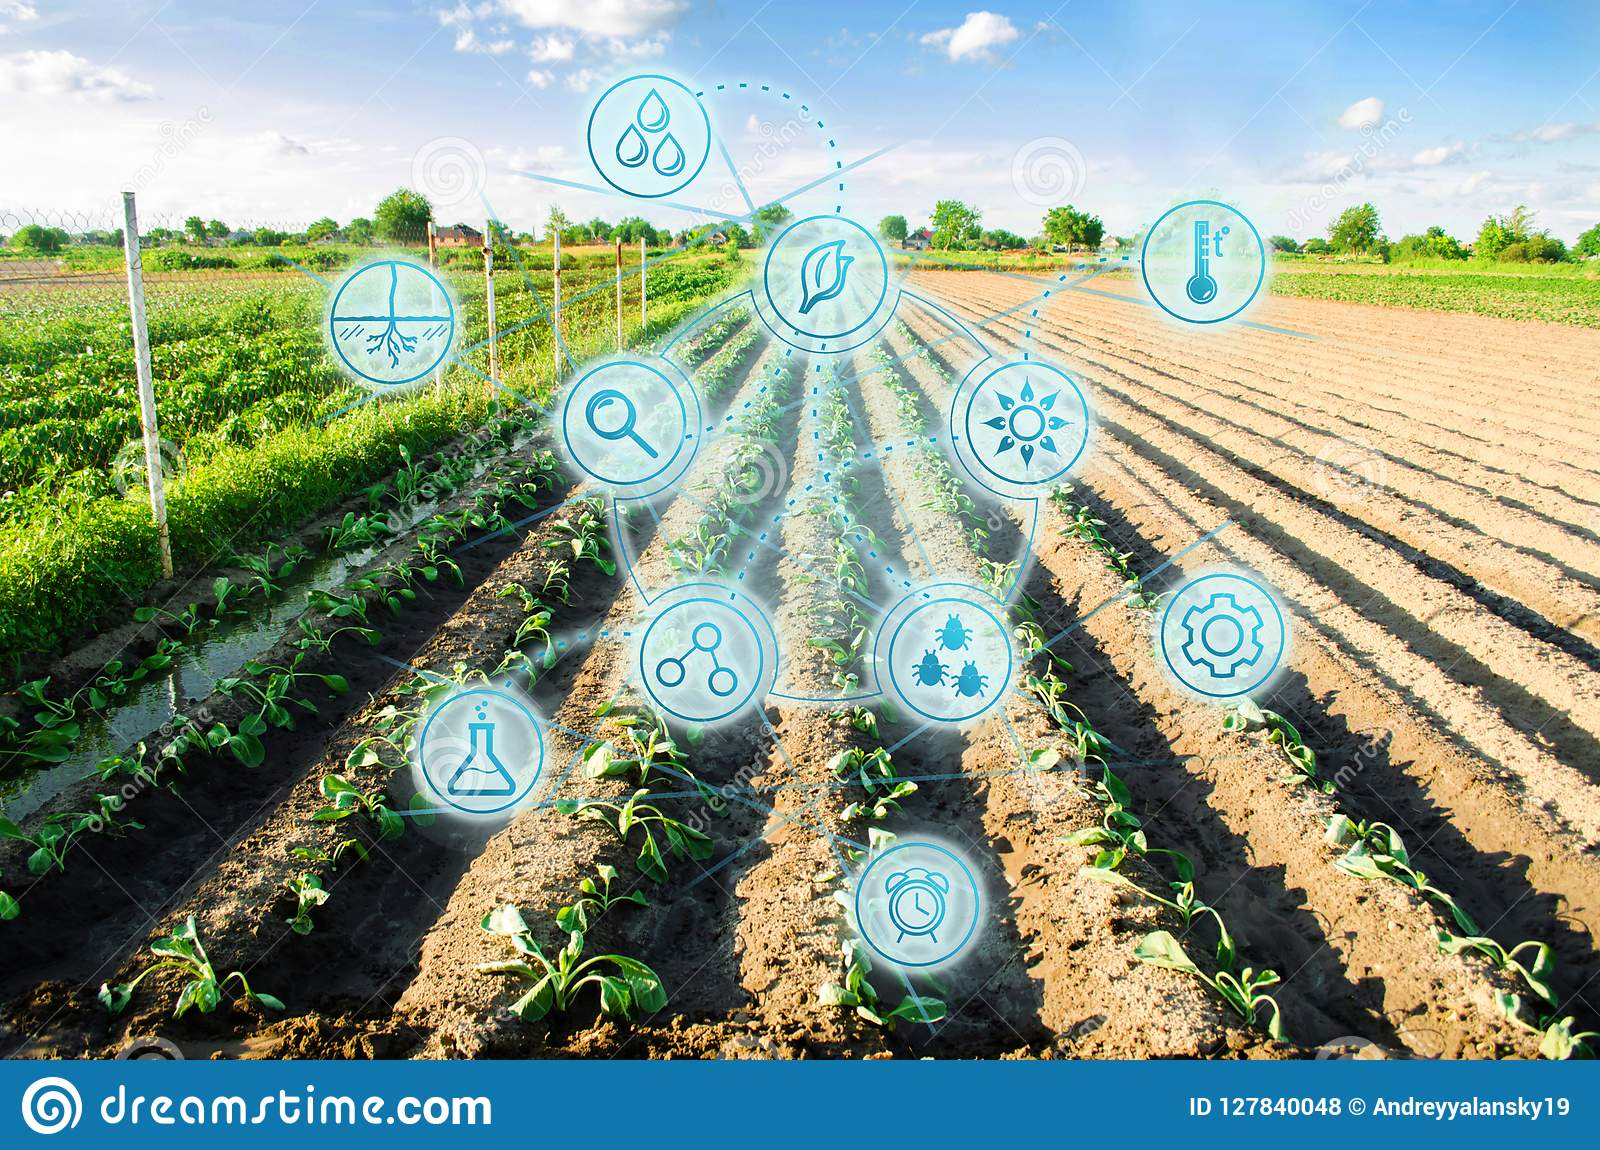 Farm field of cabbage. Young seedlings. Innovations and new technologies in the agricultural business. Scientific development